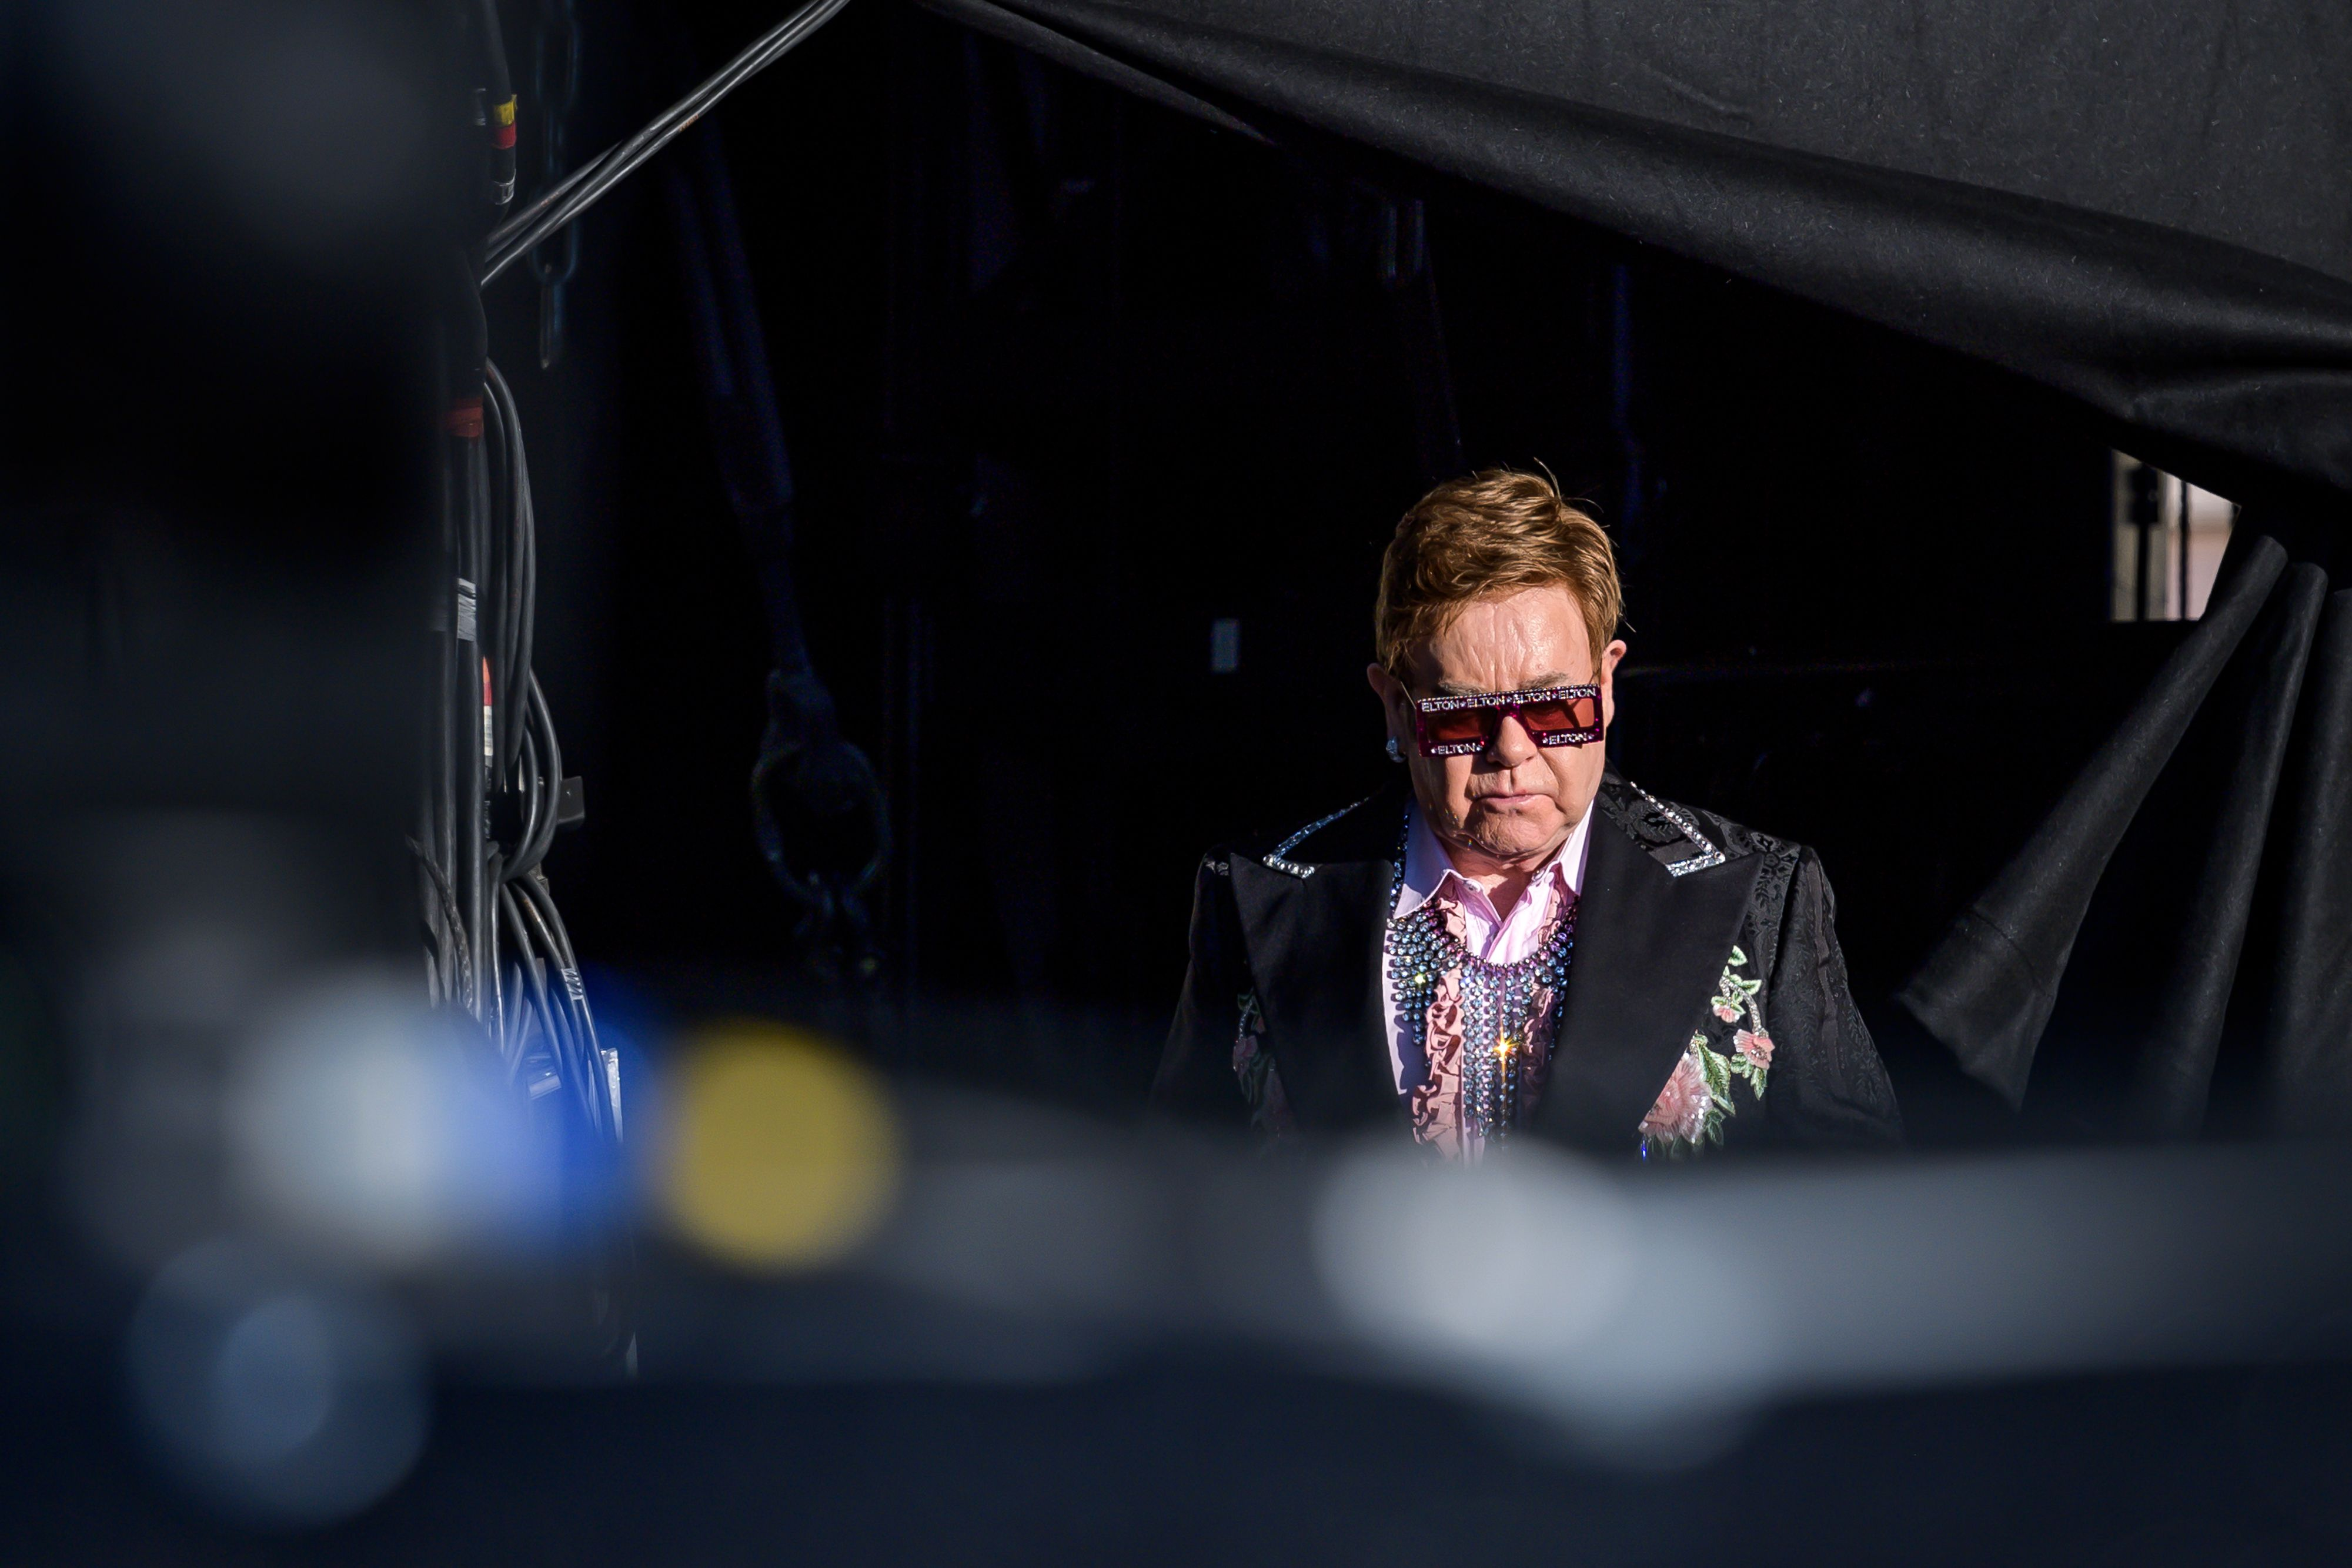 Elton John arrives on stage for his Farewell Yellow Brick Road tour. (FABRICE COFFRINI/AFP/Getty Images)